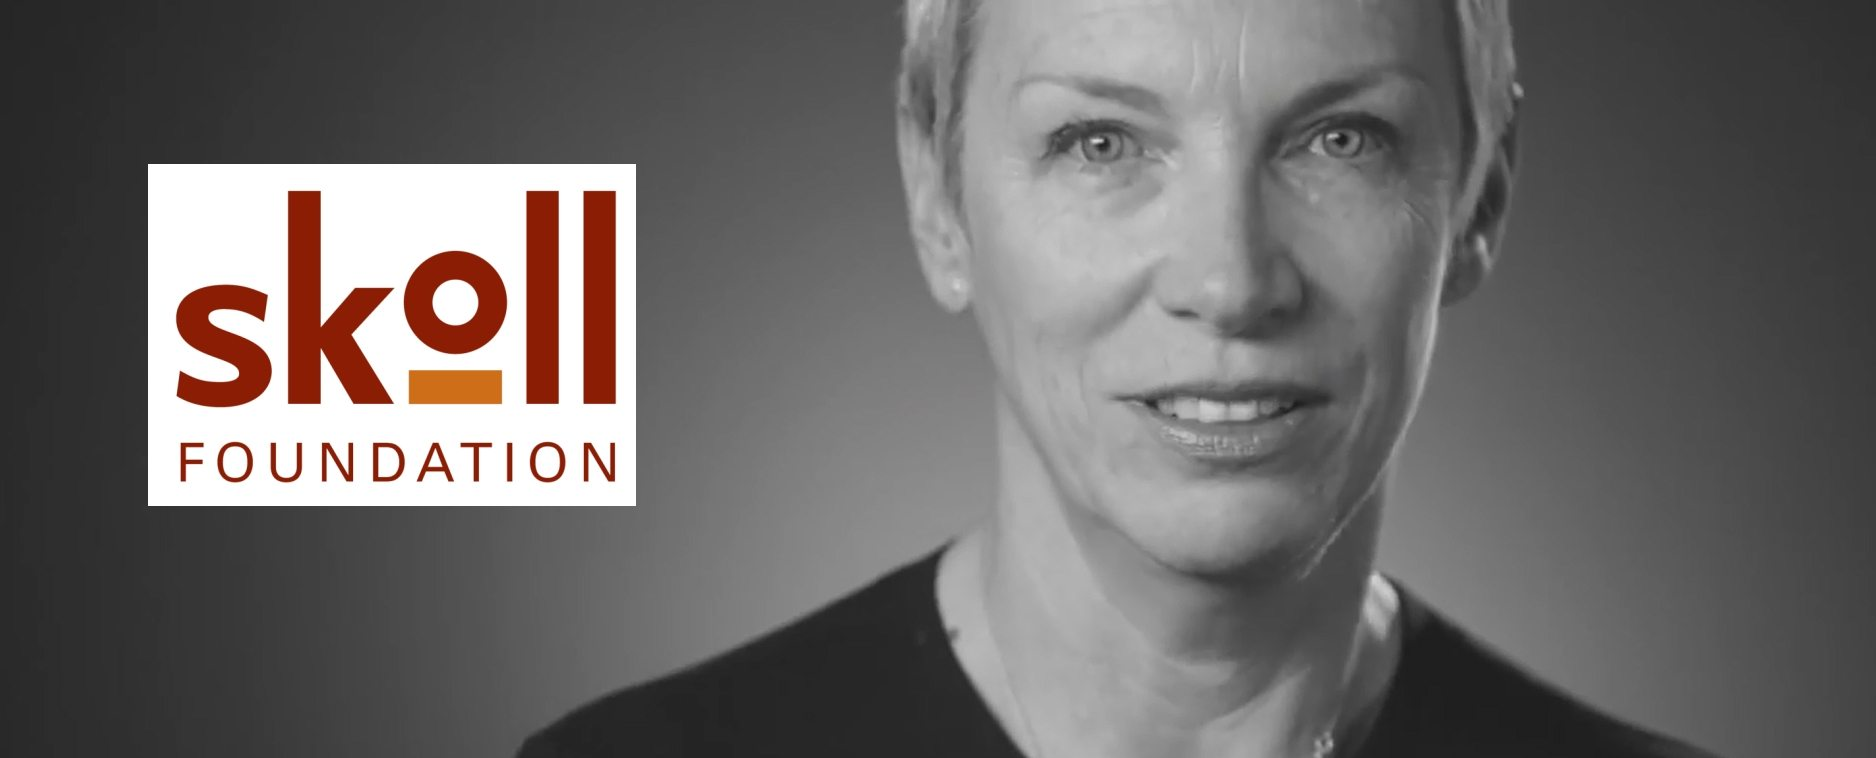 Watch a short clip of Annie Lennox in this year's Skoll World Forum video